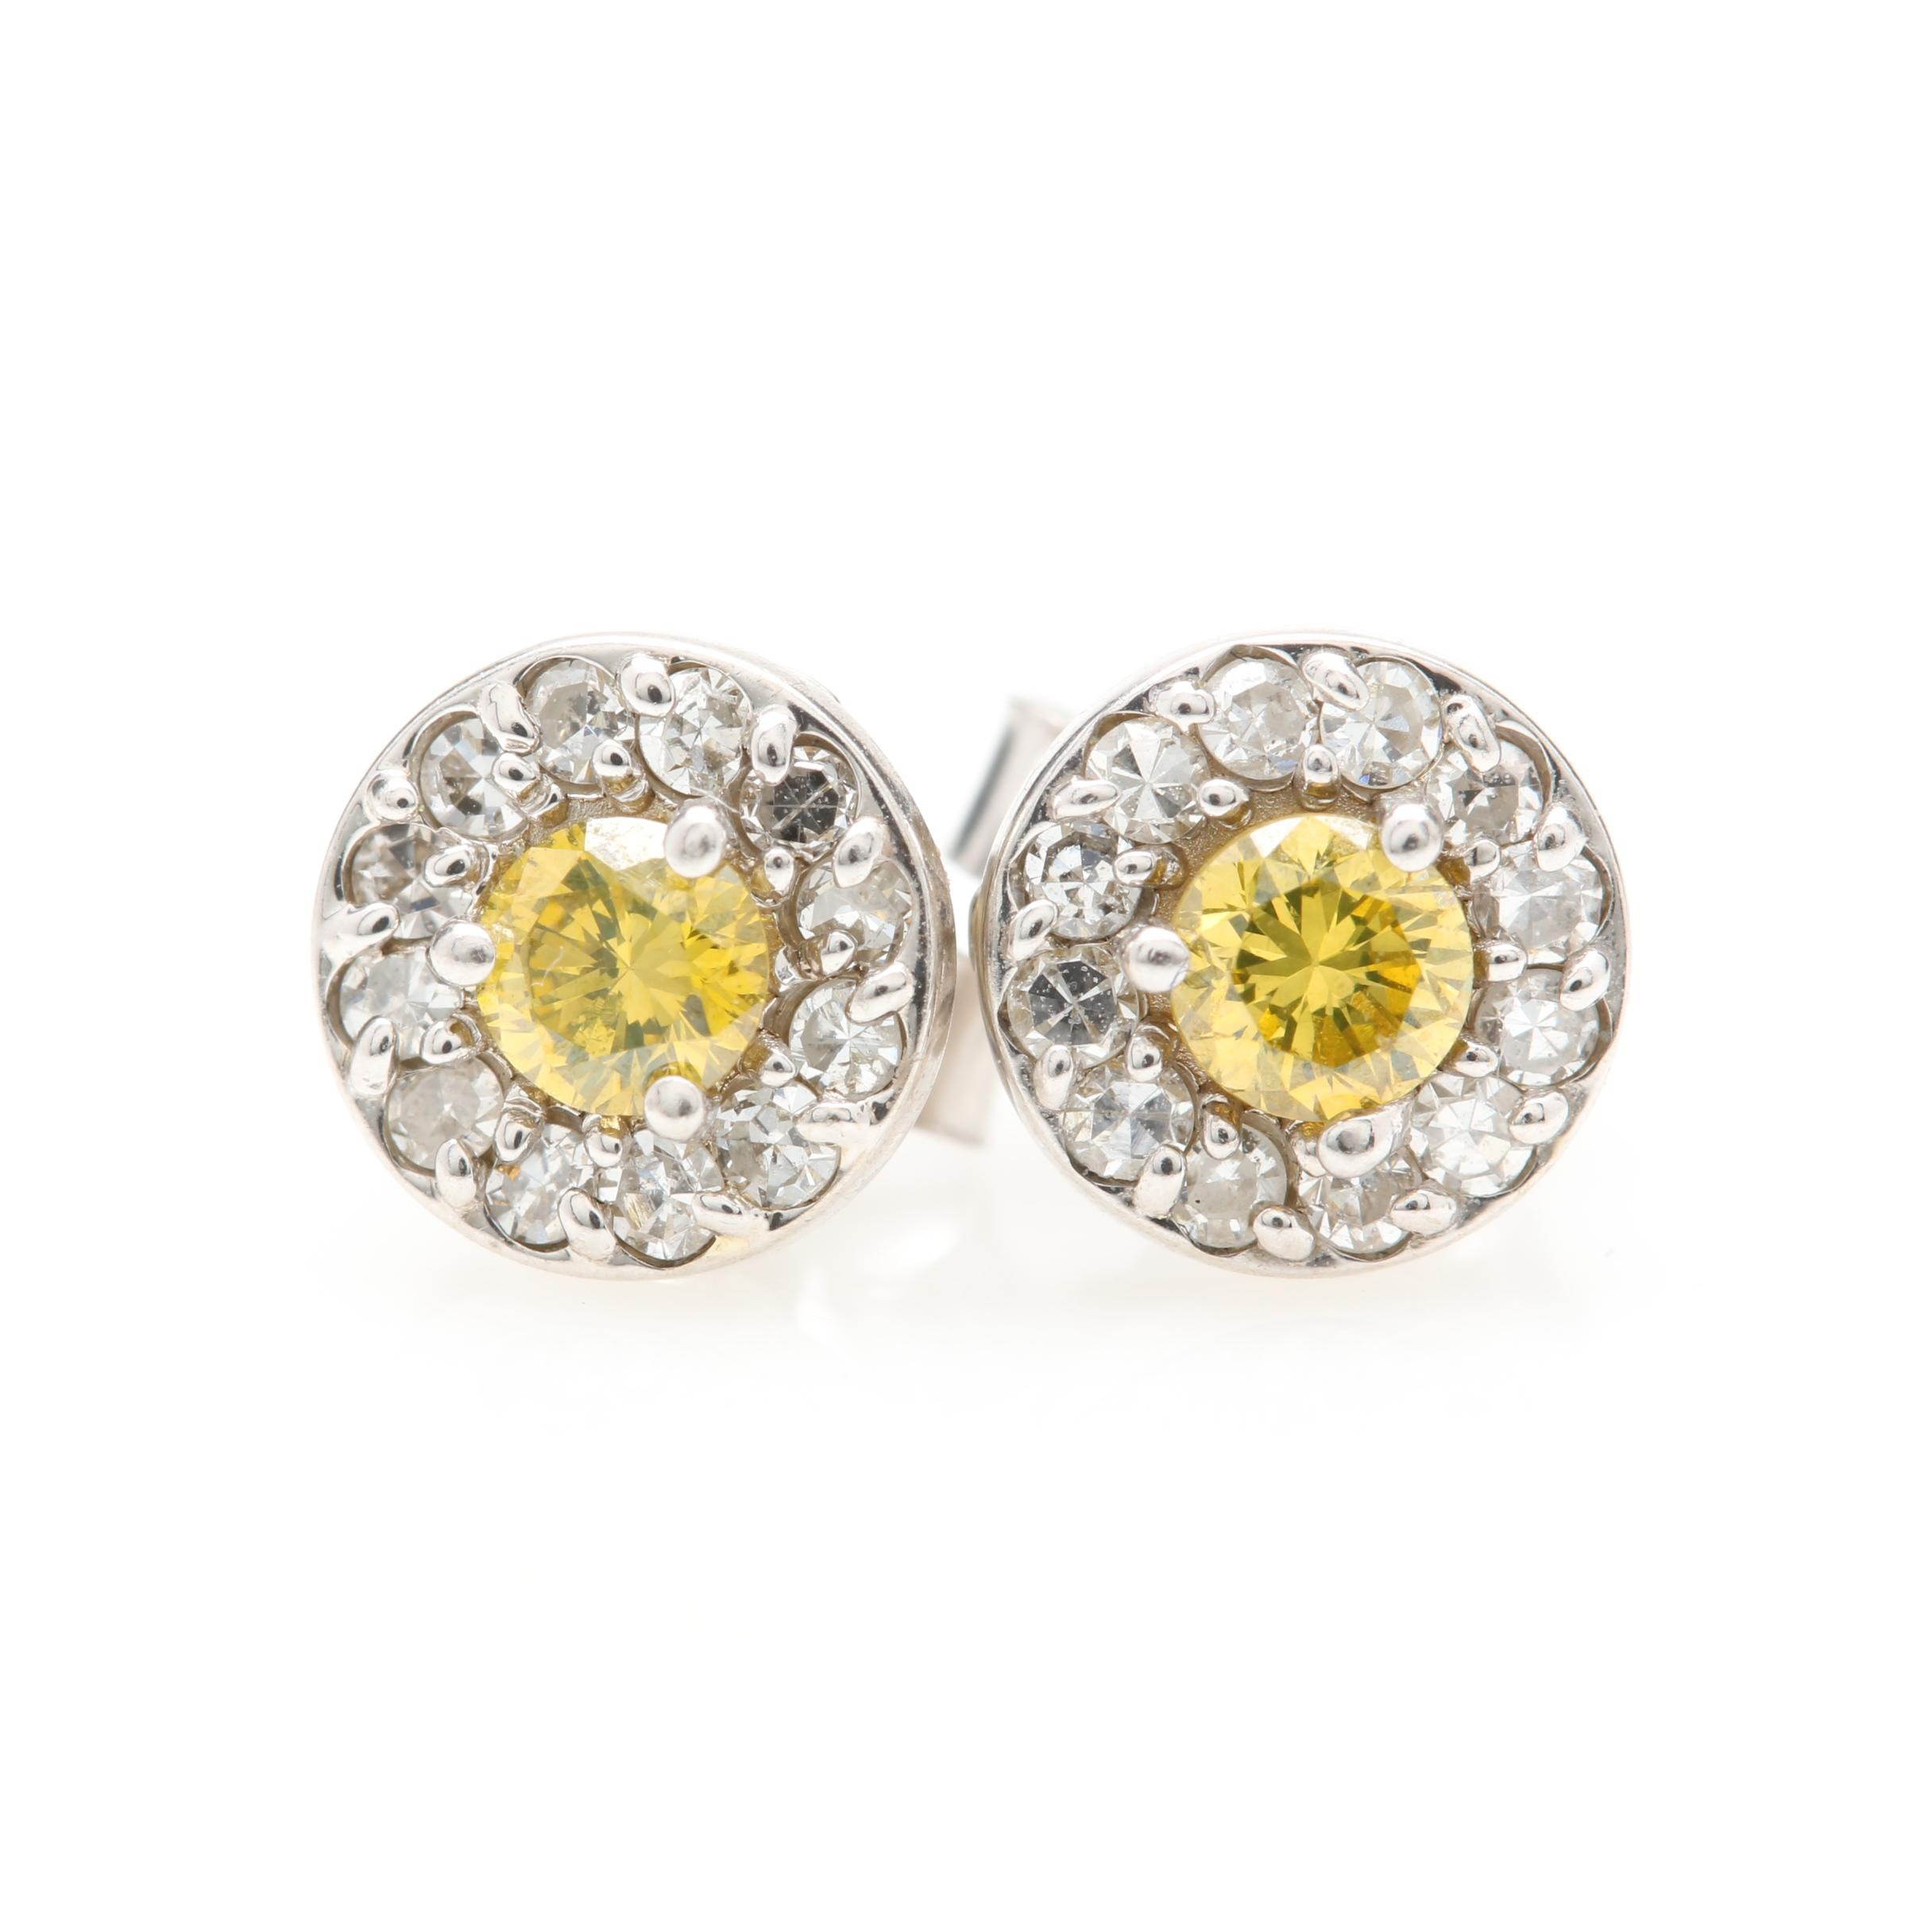 14K White Gold Yellow Diamond and Diamond Earrings